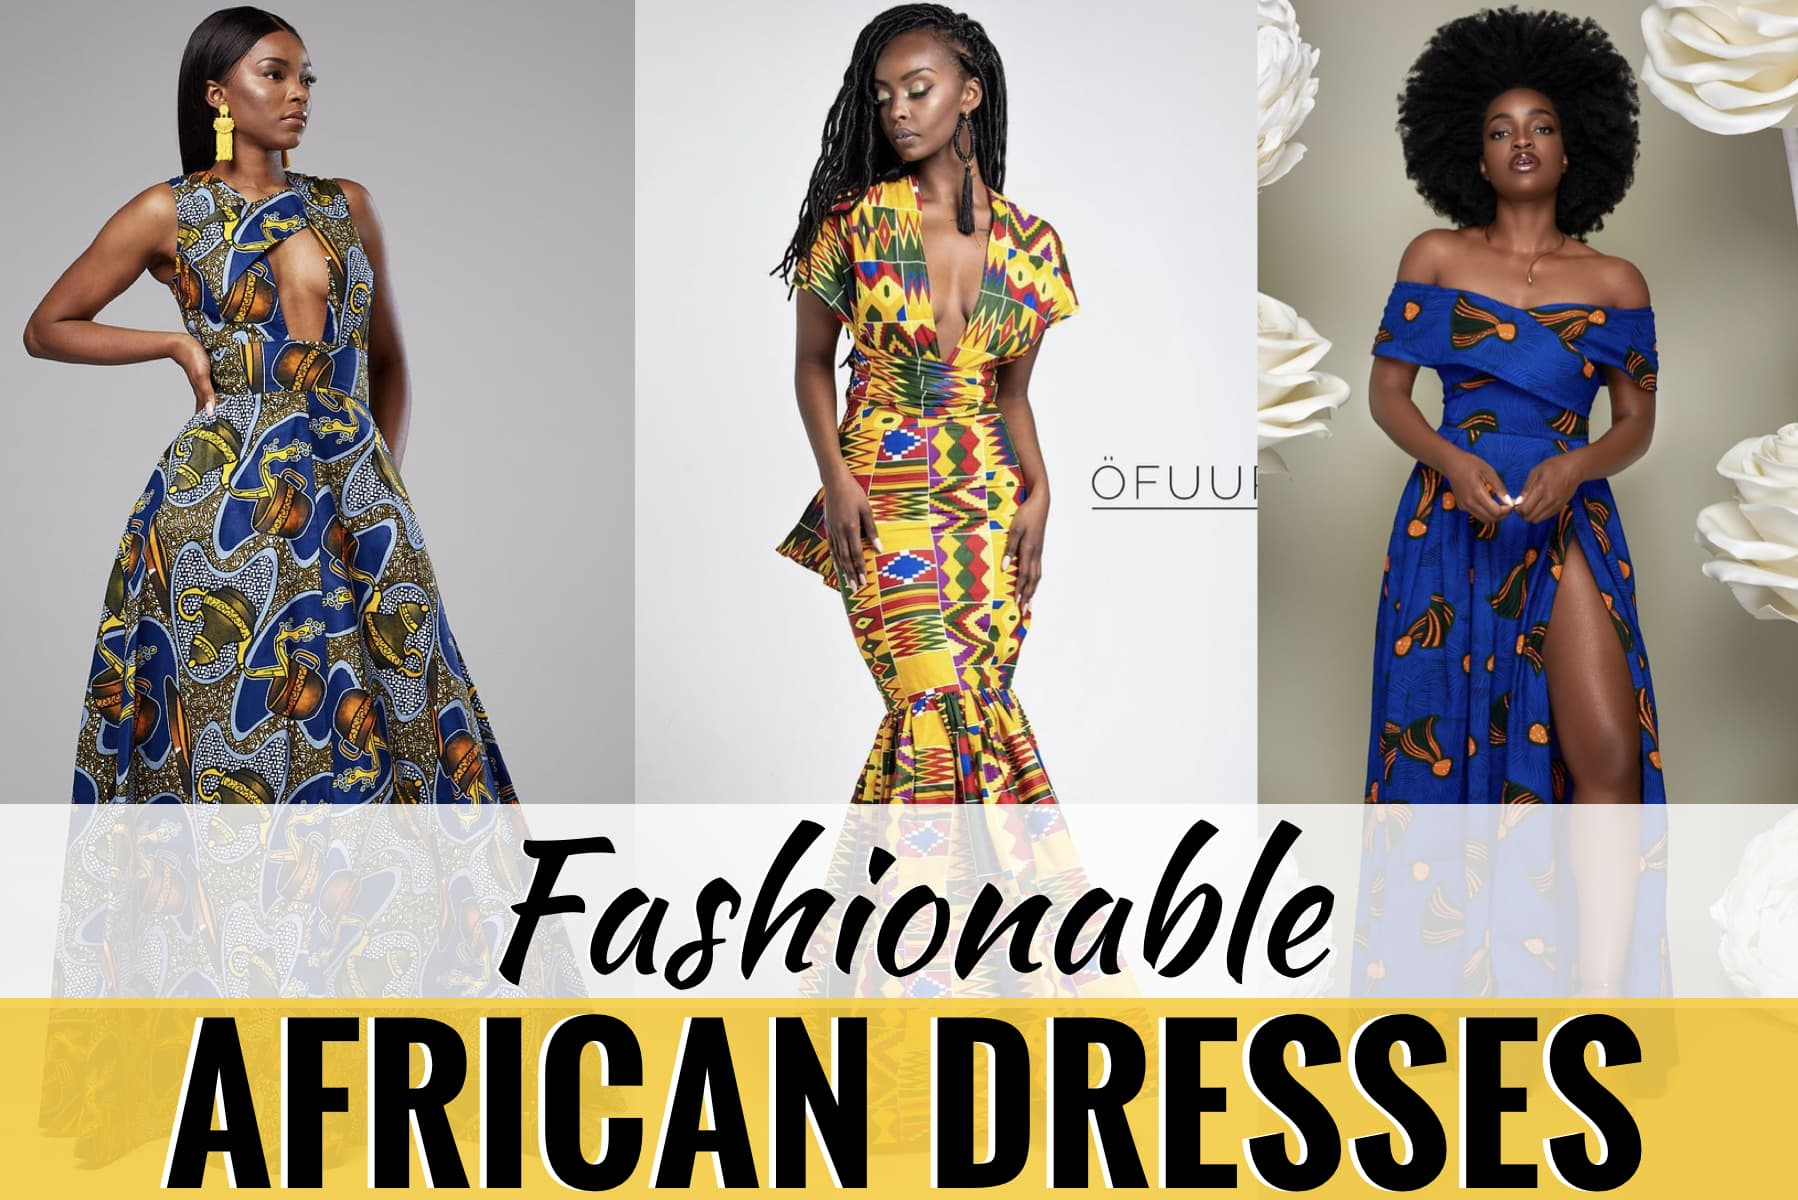 45 Fashionable African Dresses Of 2021 Ankara Dresses Of The Year